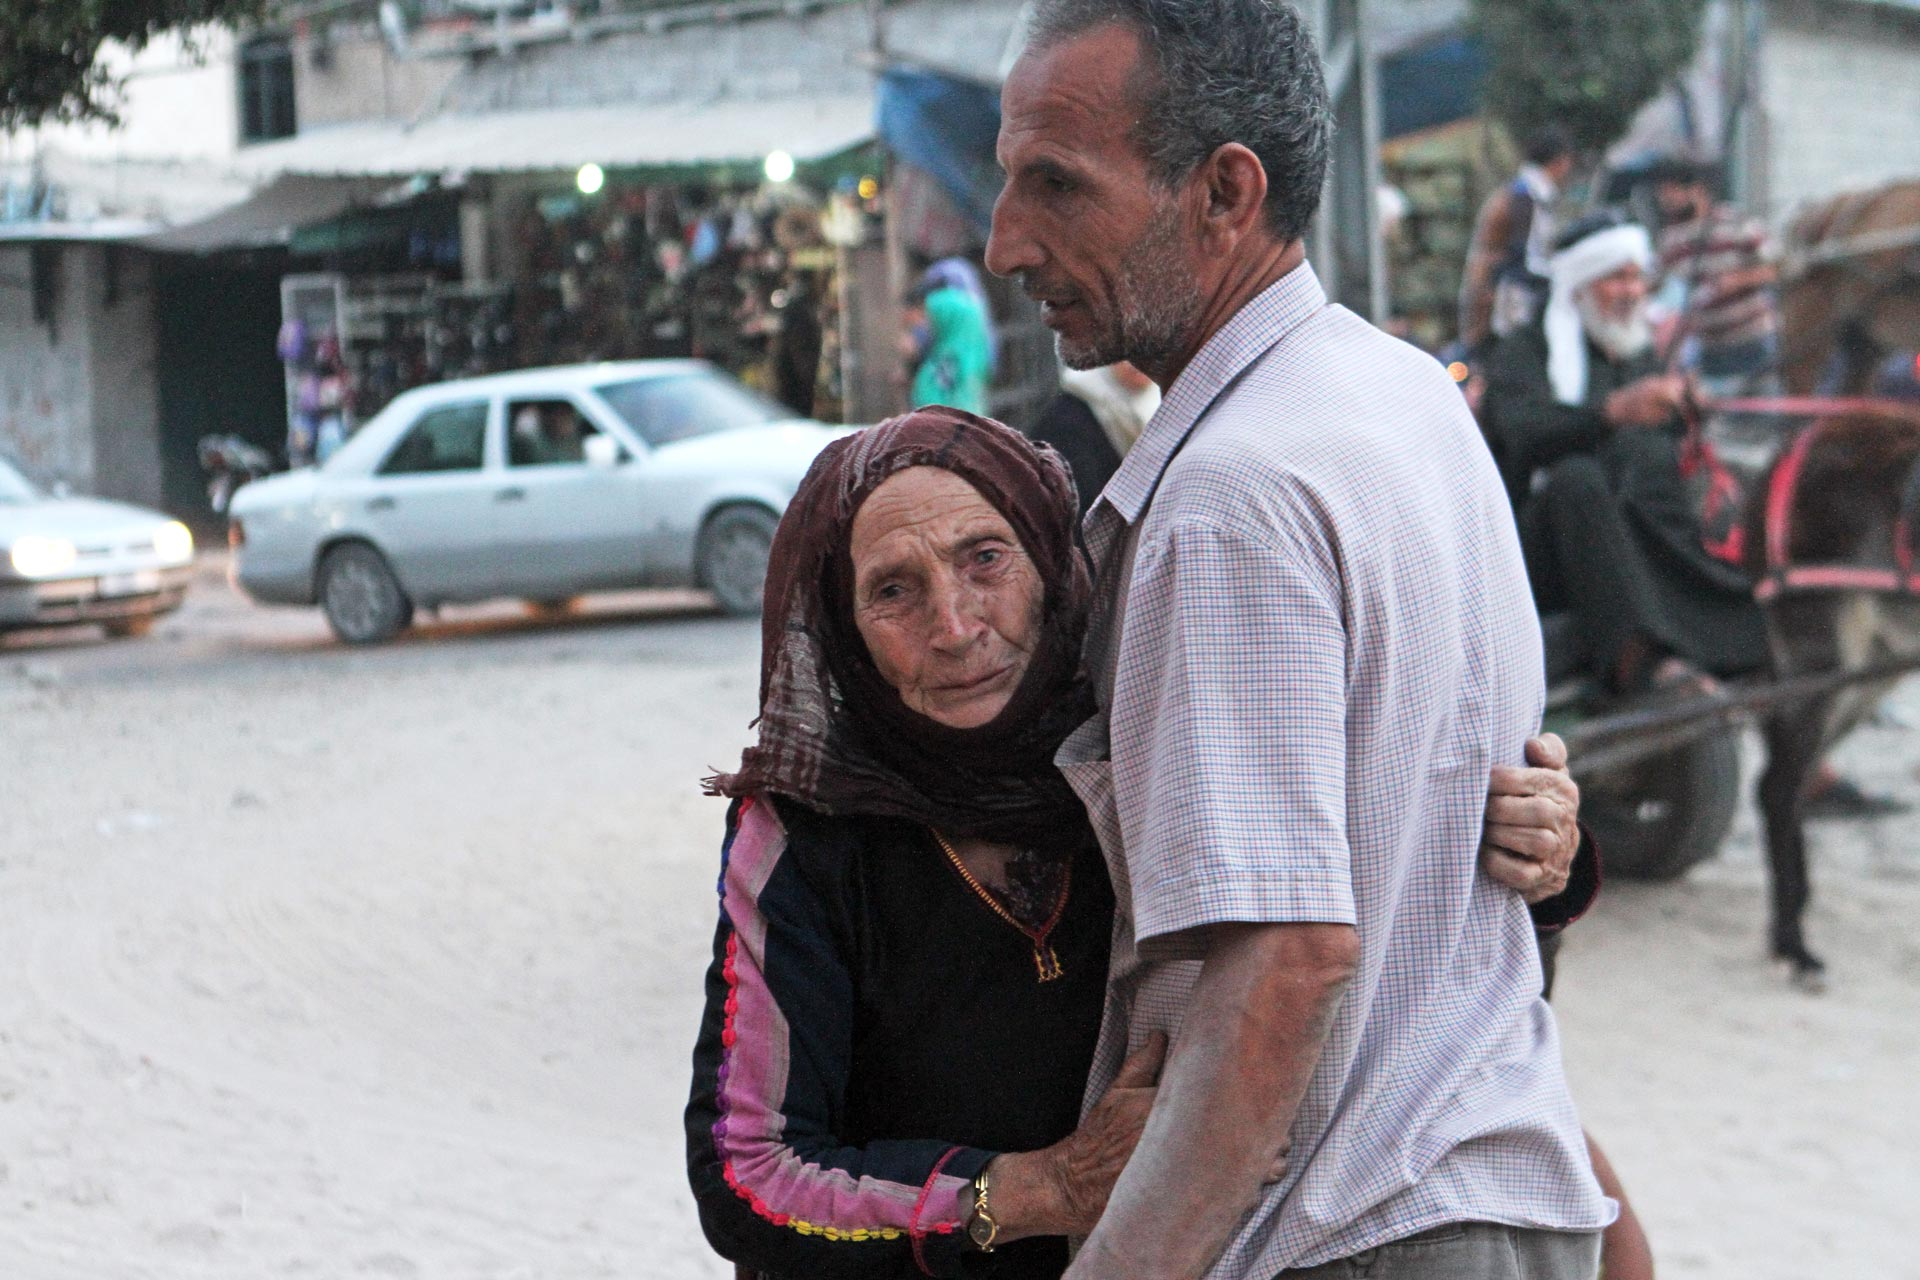 Fatma al-Kilani, always searching or waiting for her son Ibrahim to return home. Here, she embraces her eldest, Saleh.